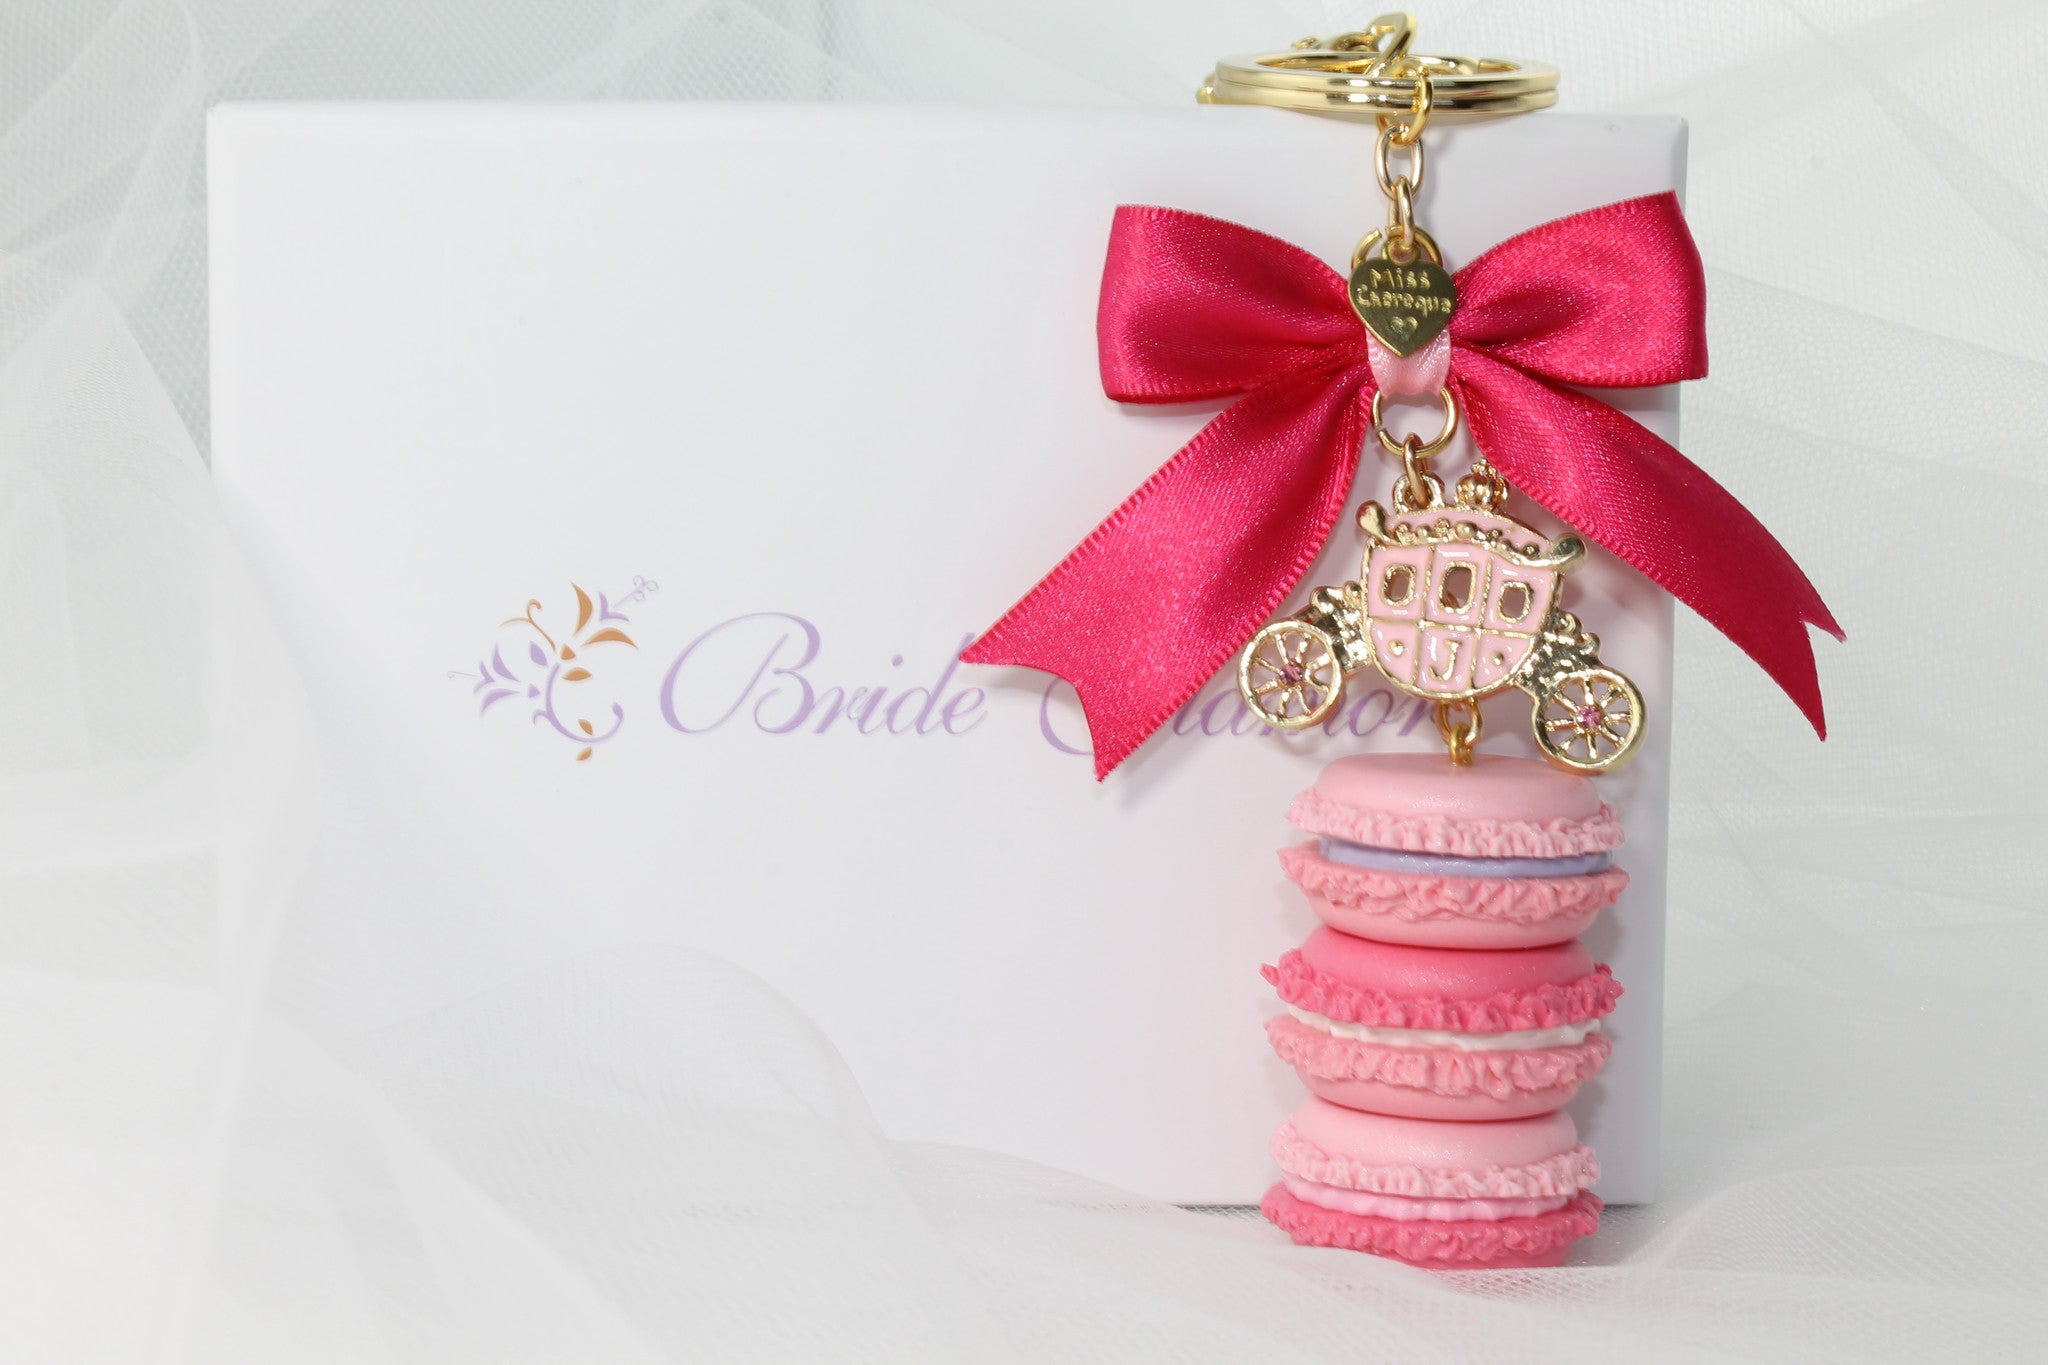 Wedding Party Gift / Favor French Macaroon Handmade - Bride Glamor